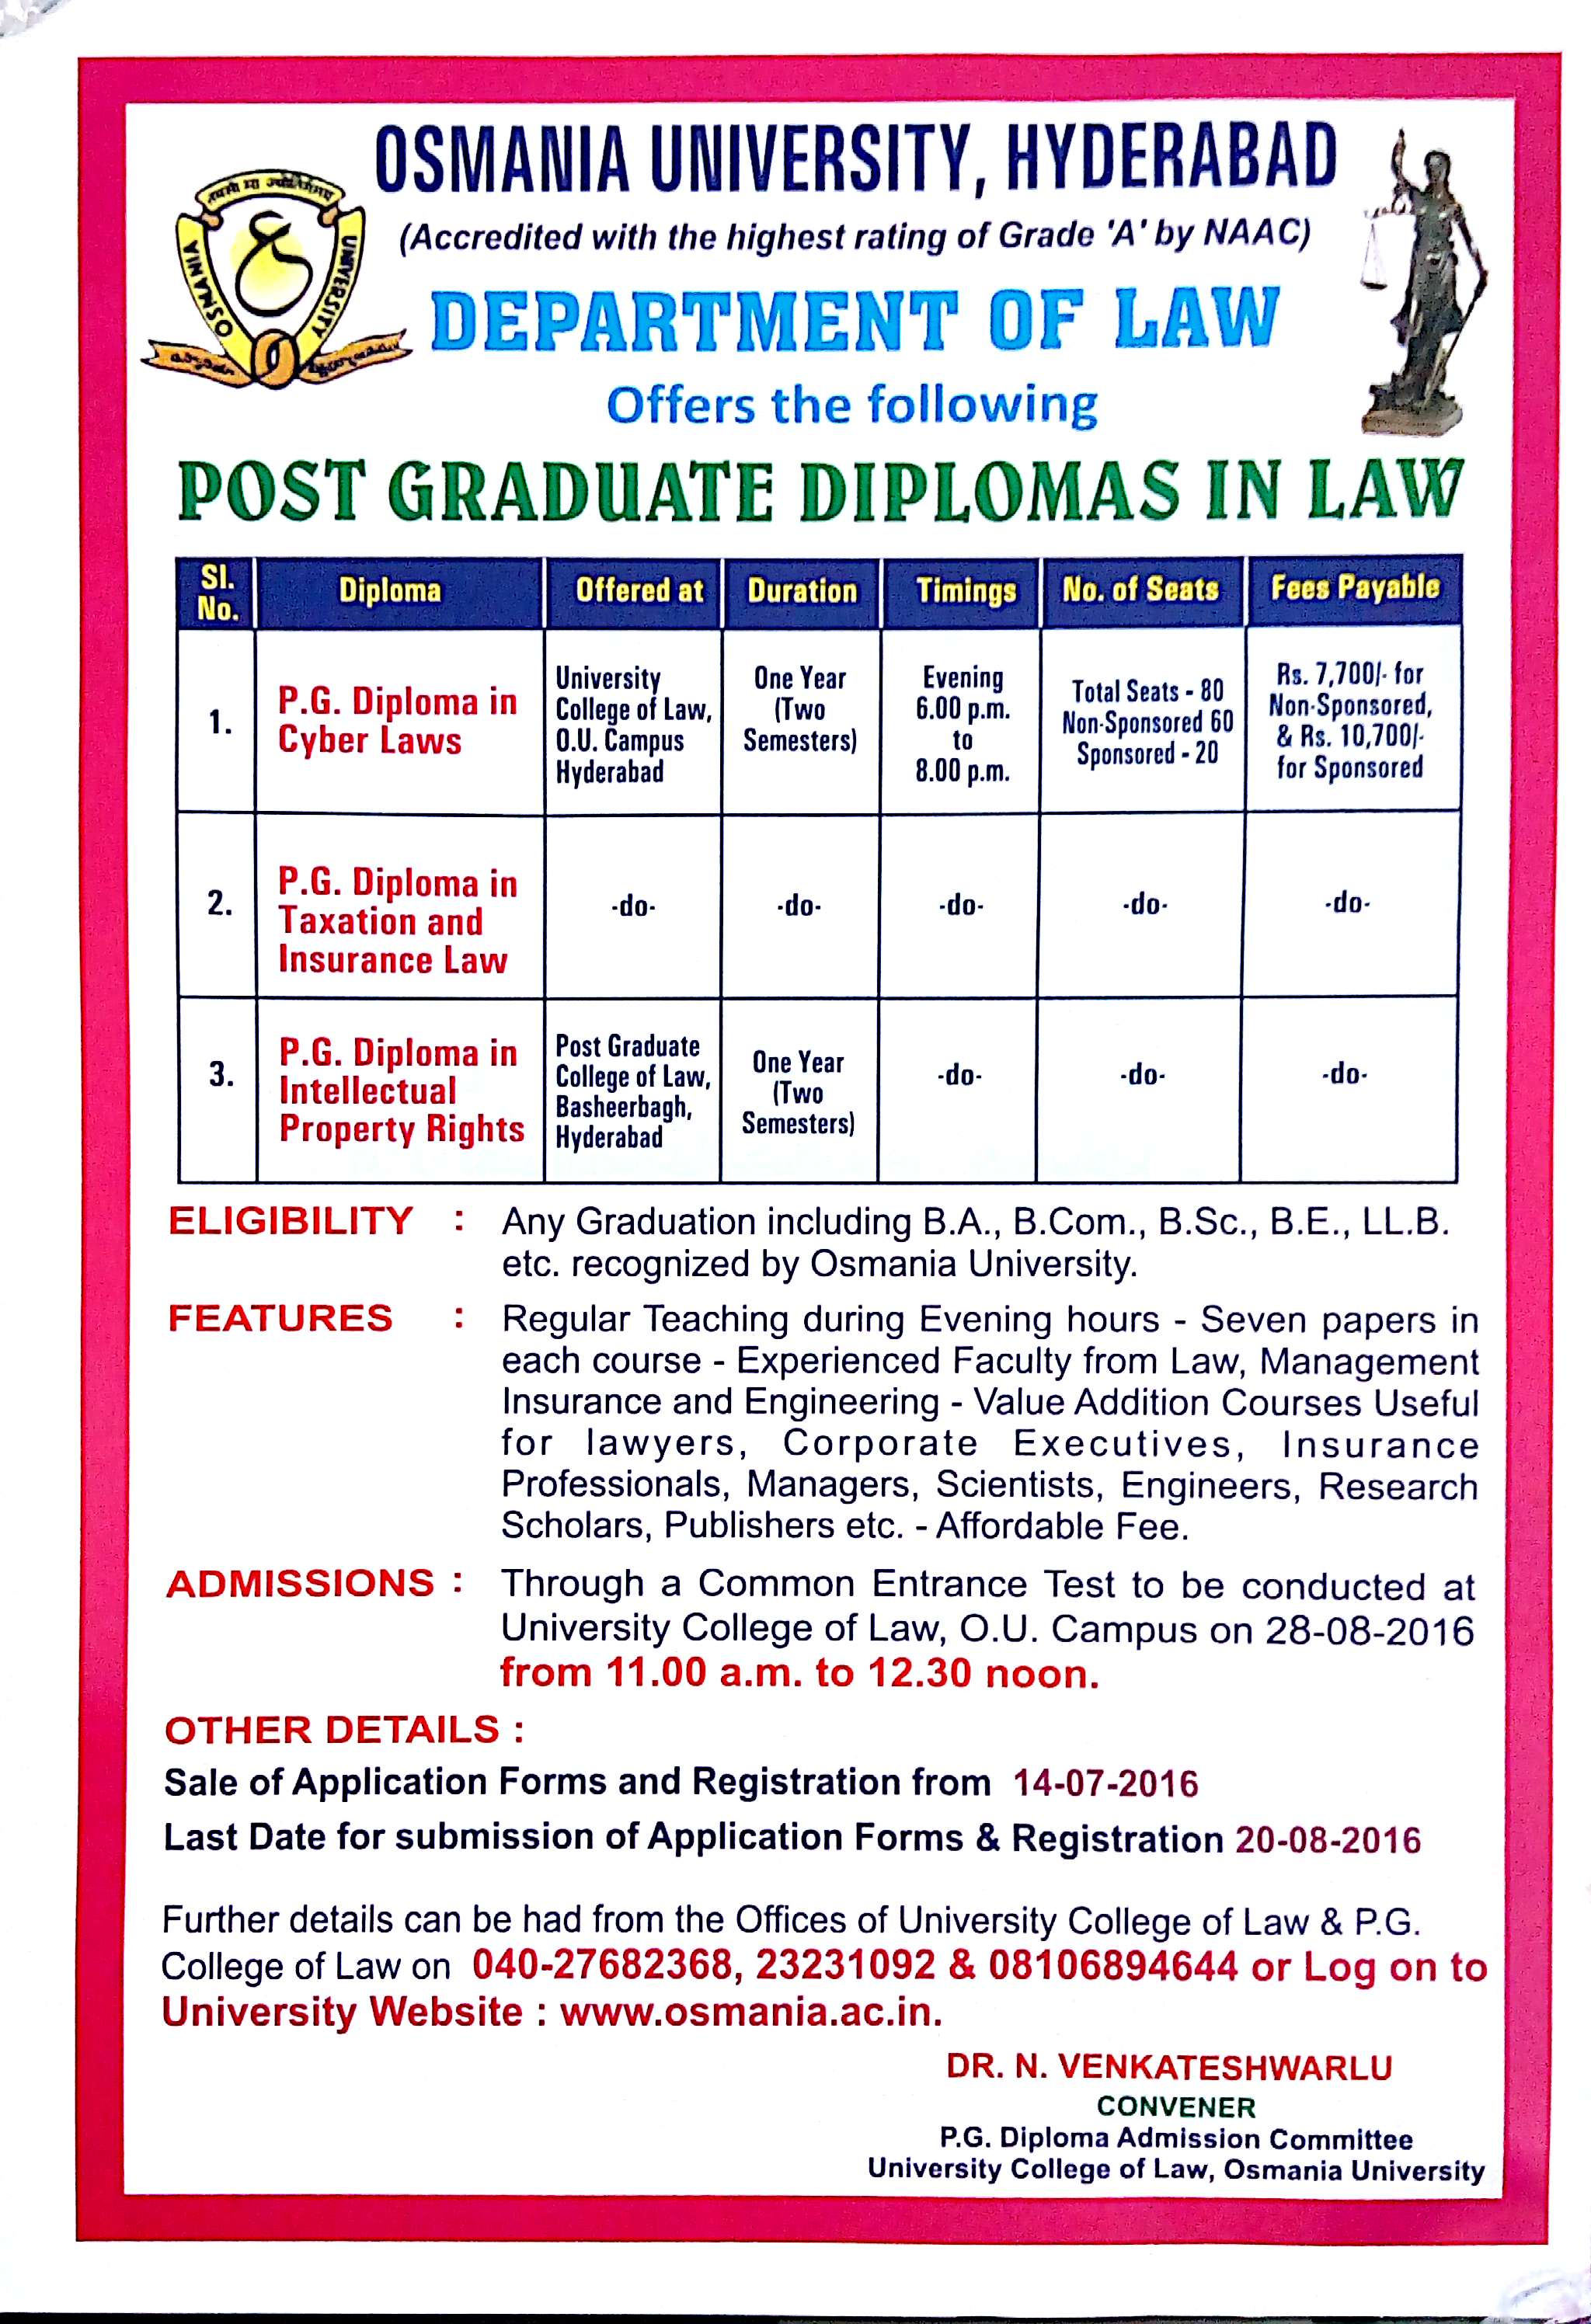 Osmania University PG Diplomas in Cyber, Taxation, Insurance Laws and Intellectual Property Rights